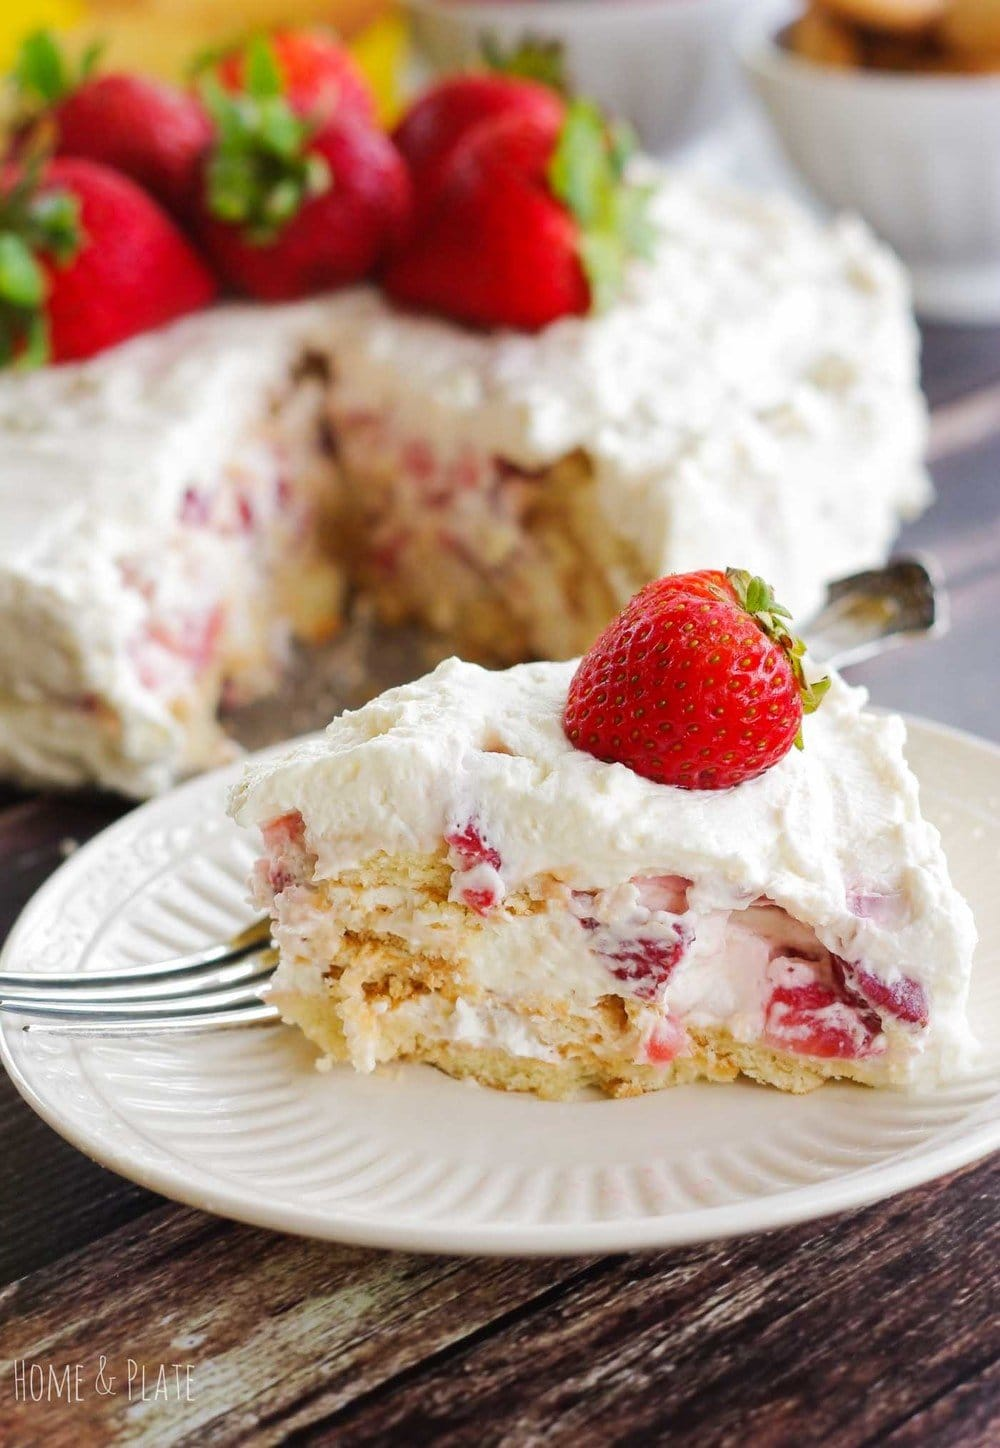 Strawberry Ice Box Cake (No Bake Dessert)